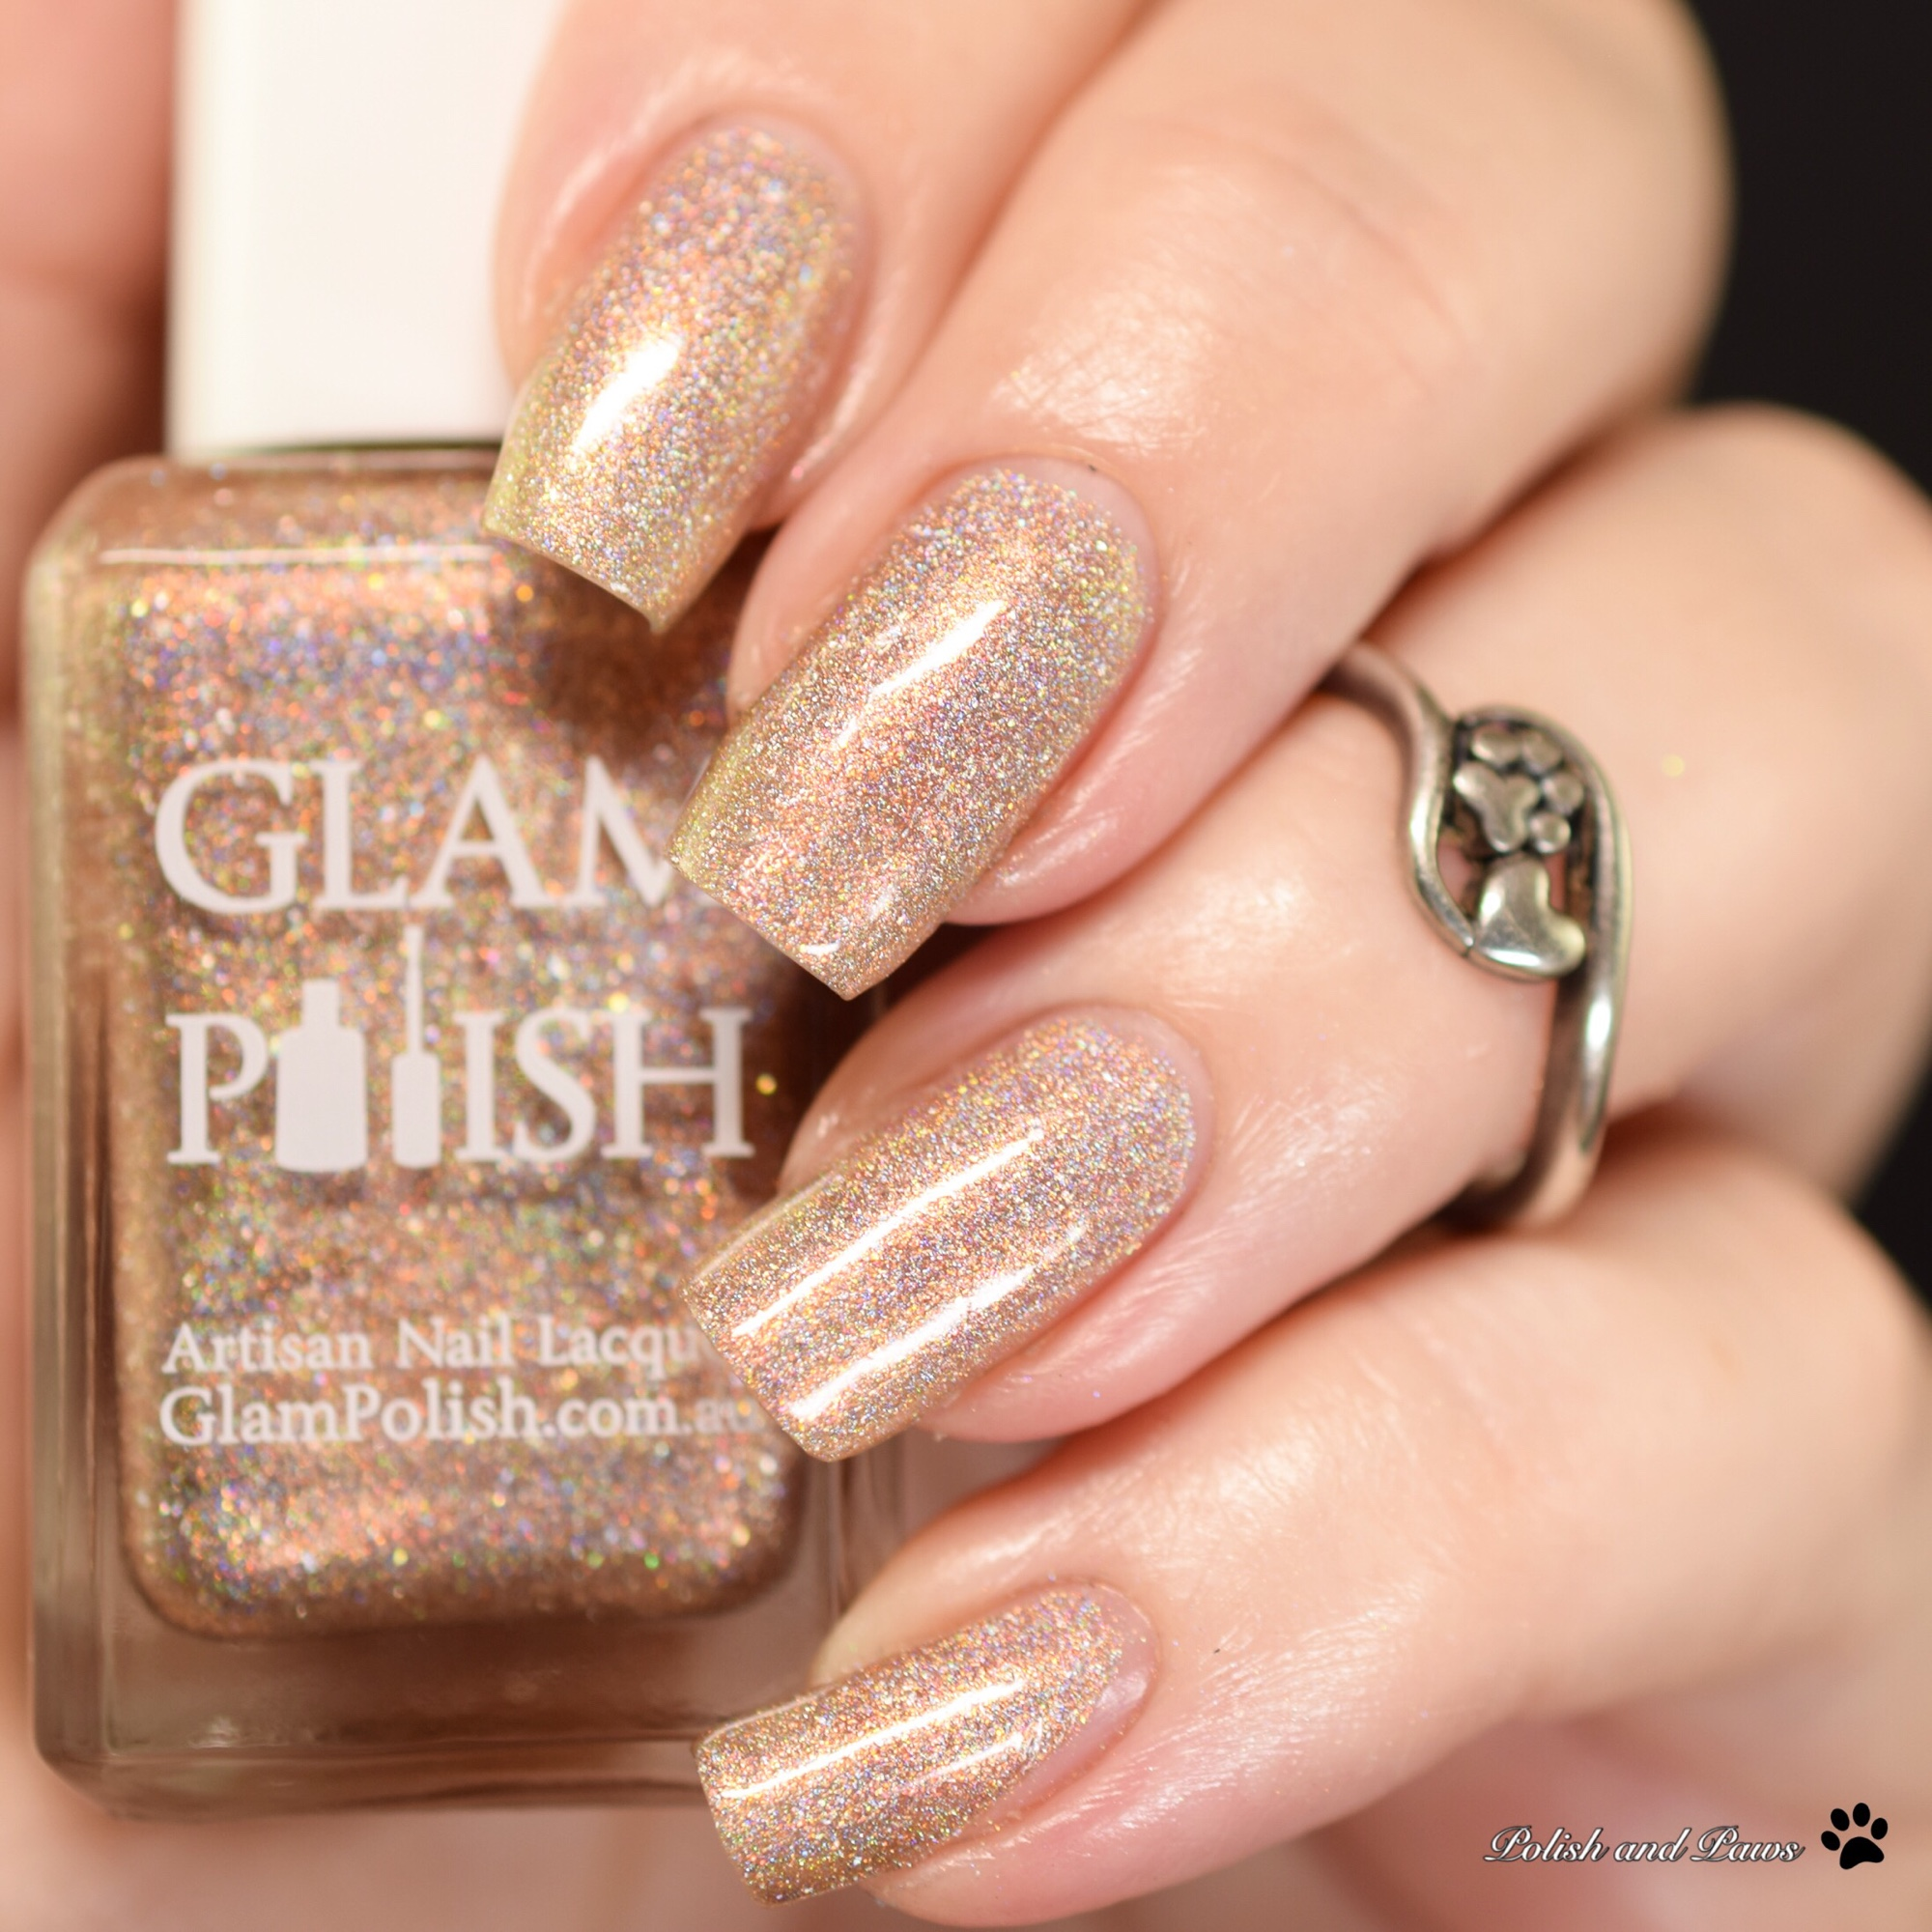 Glam Polish Don't Let the Sun Go Down on Me